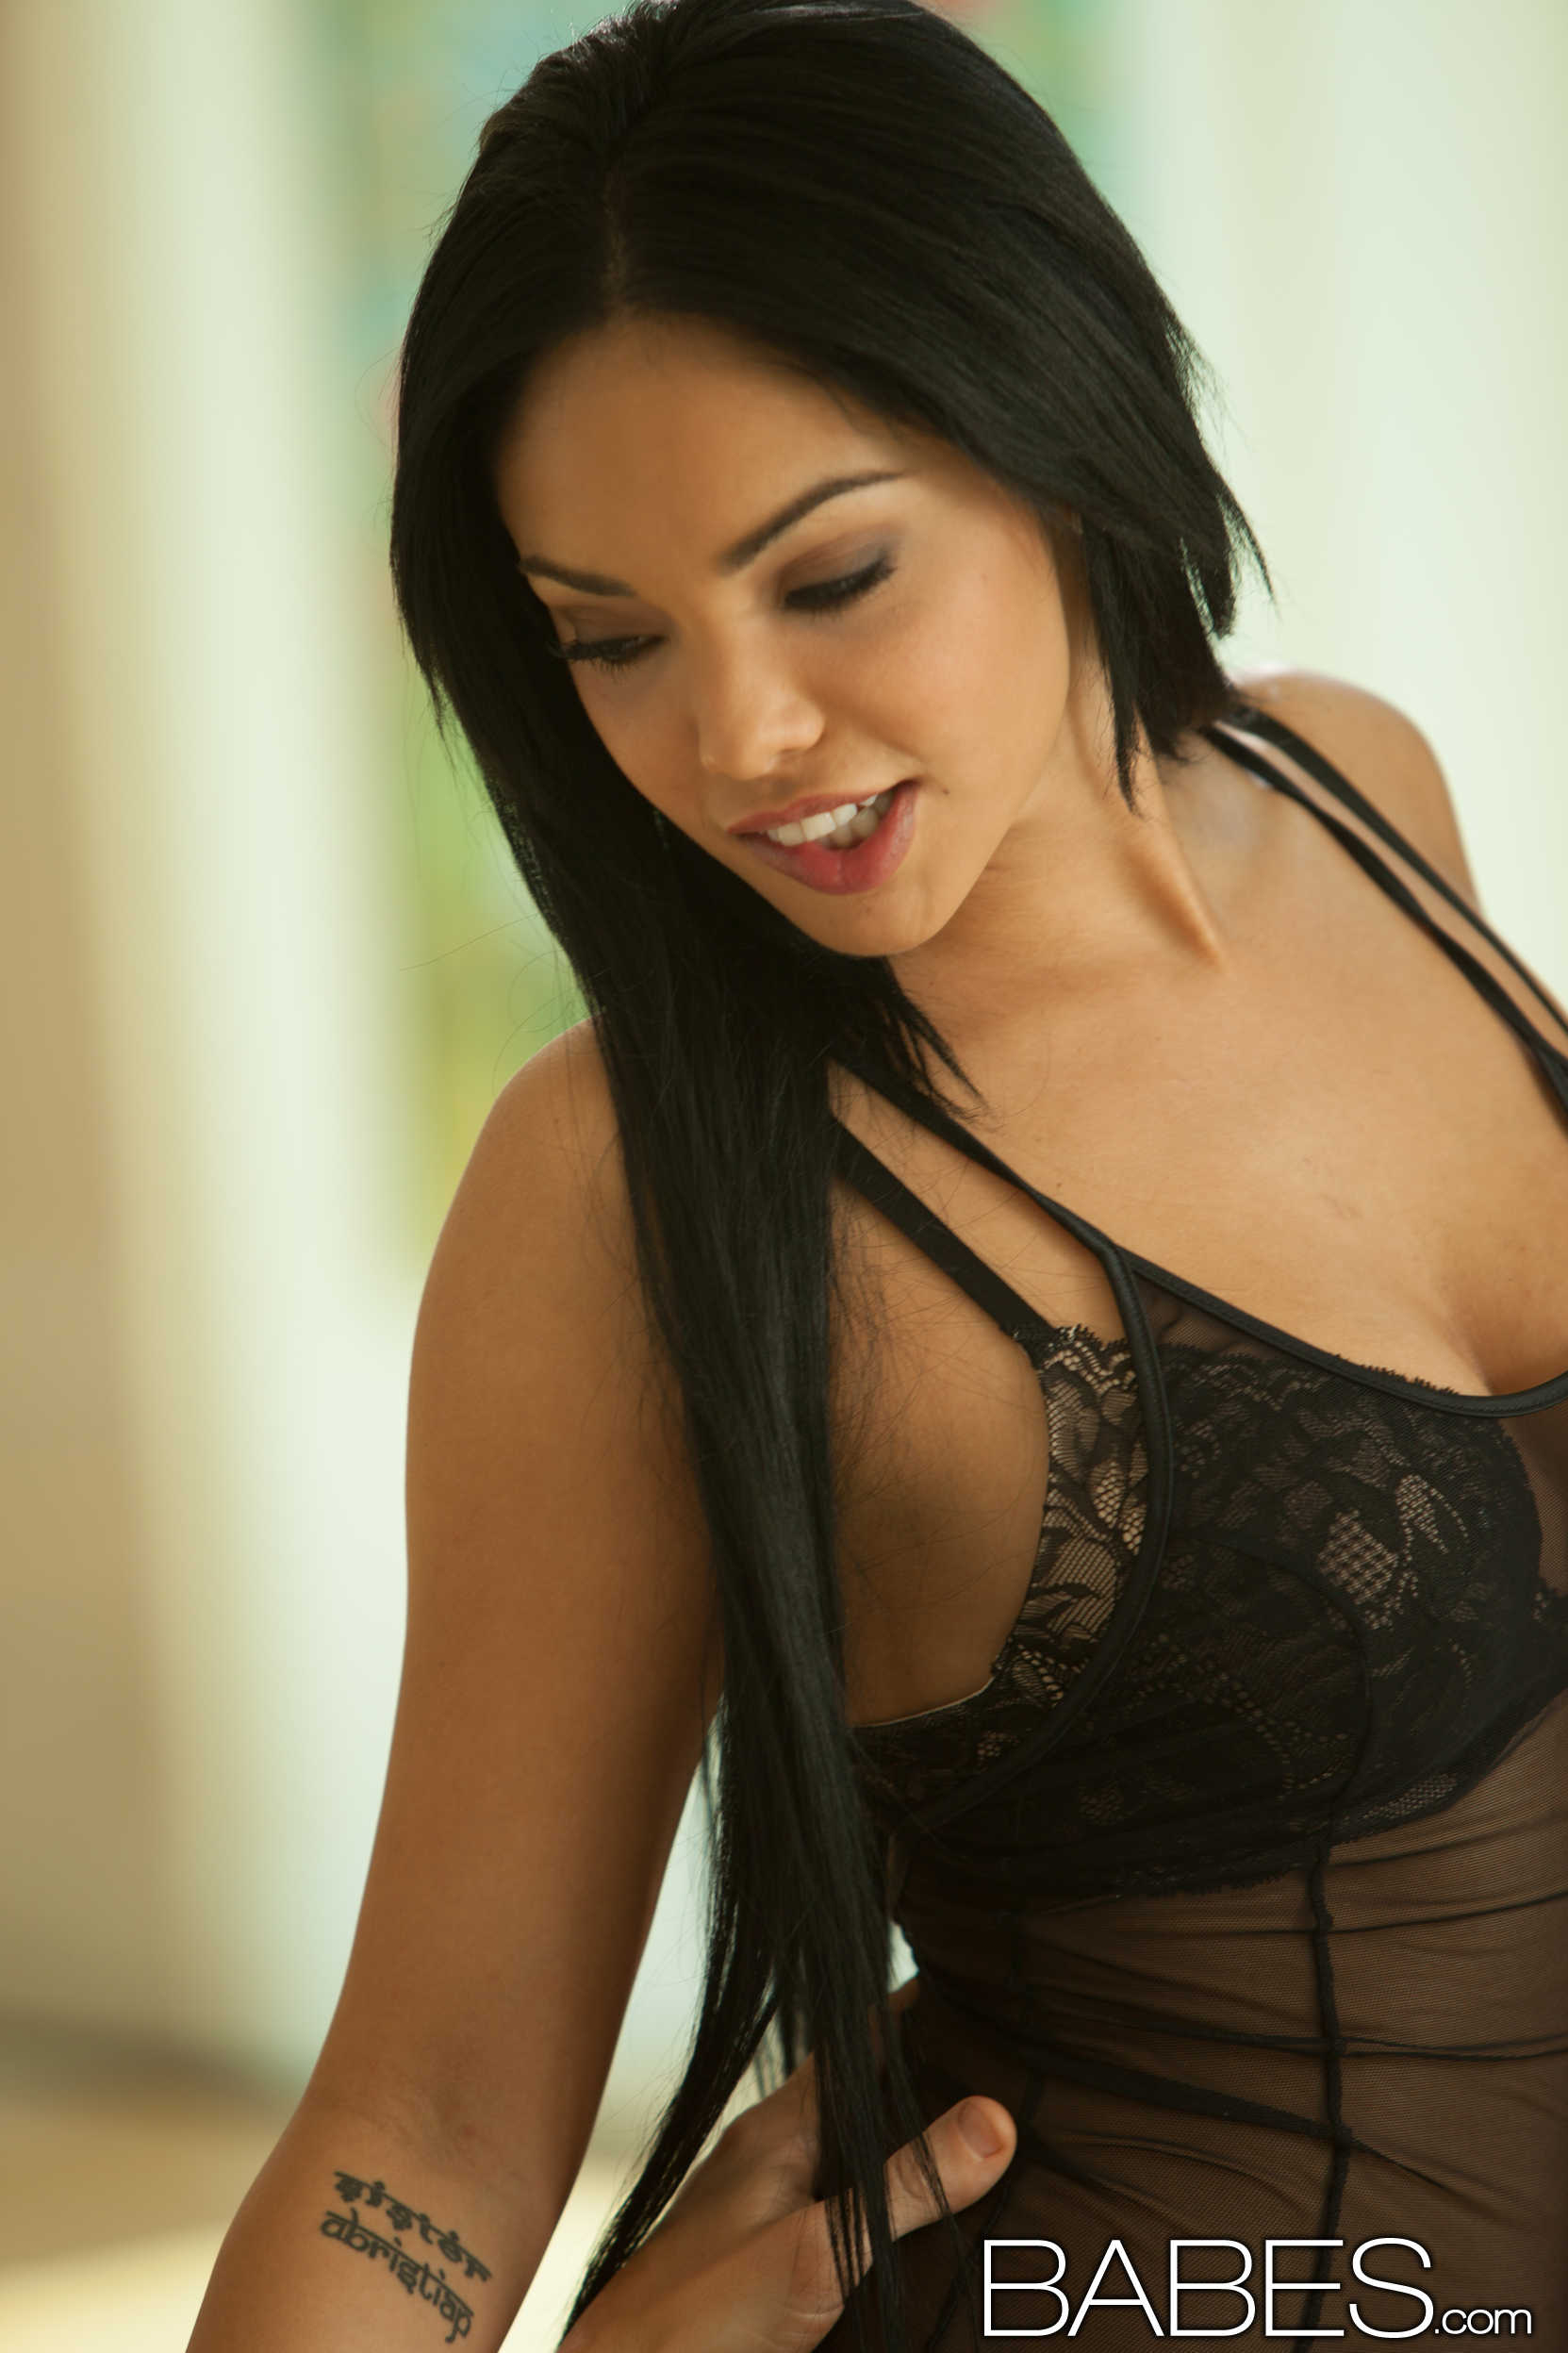 Babes 'Lay Her Down' starring Selena Rose (Photo 6)